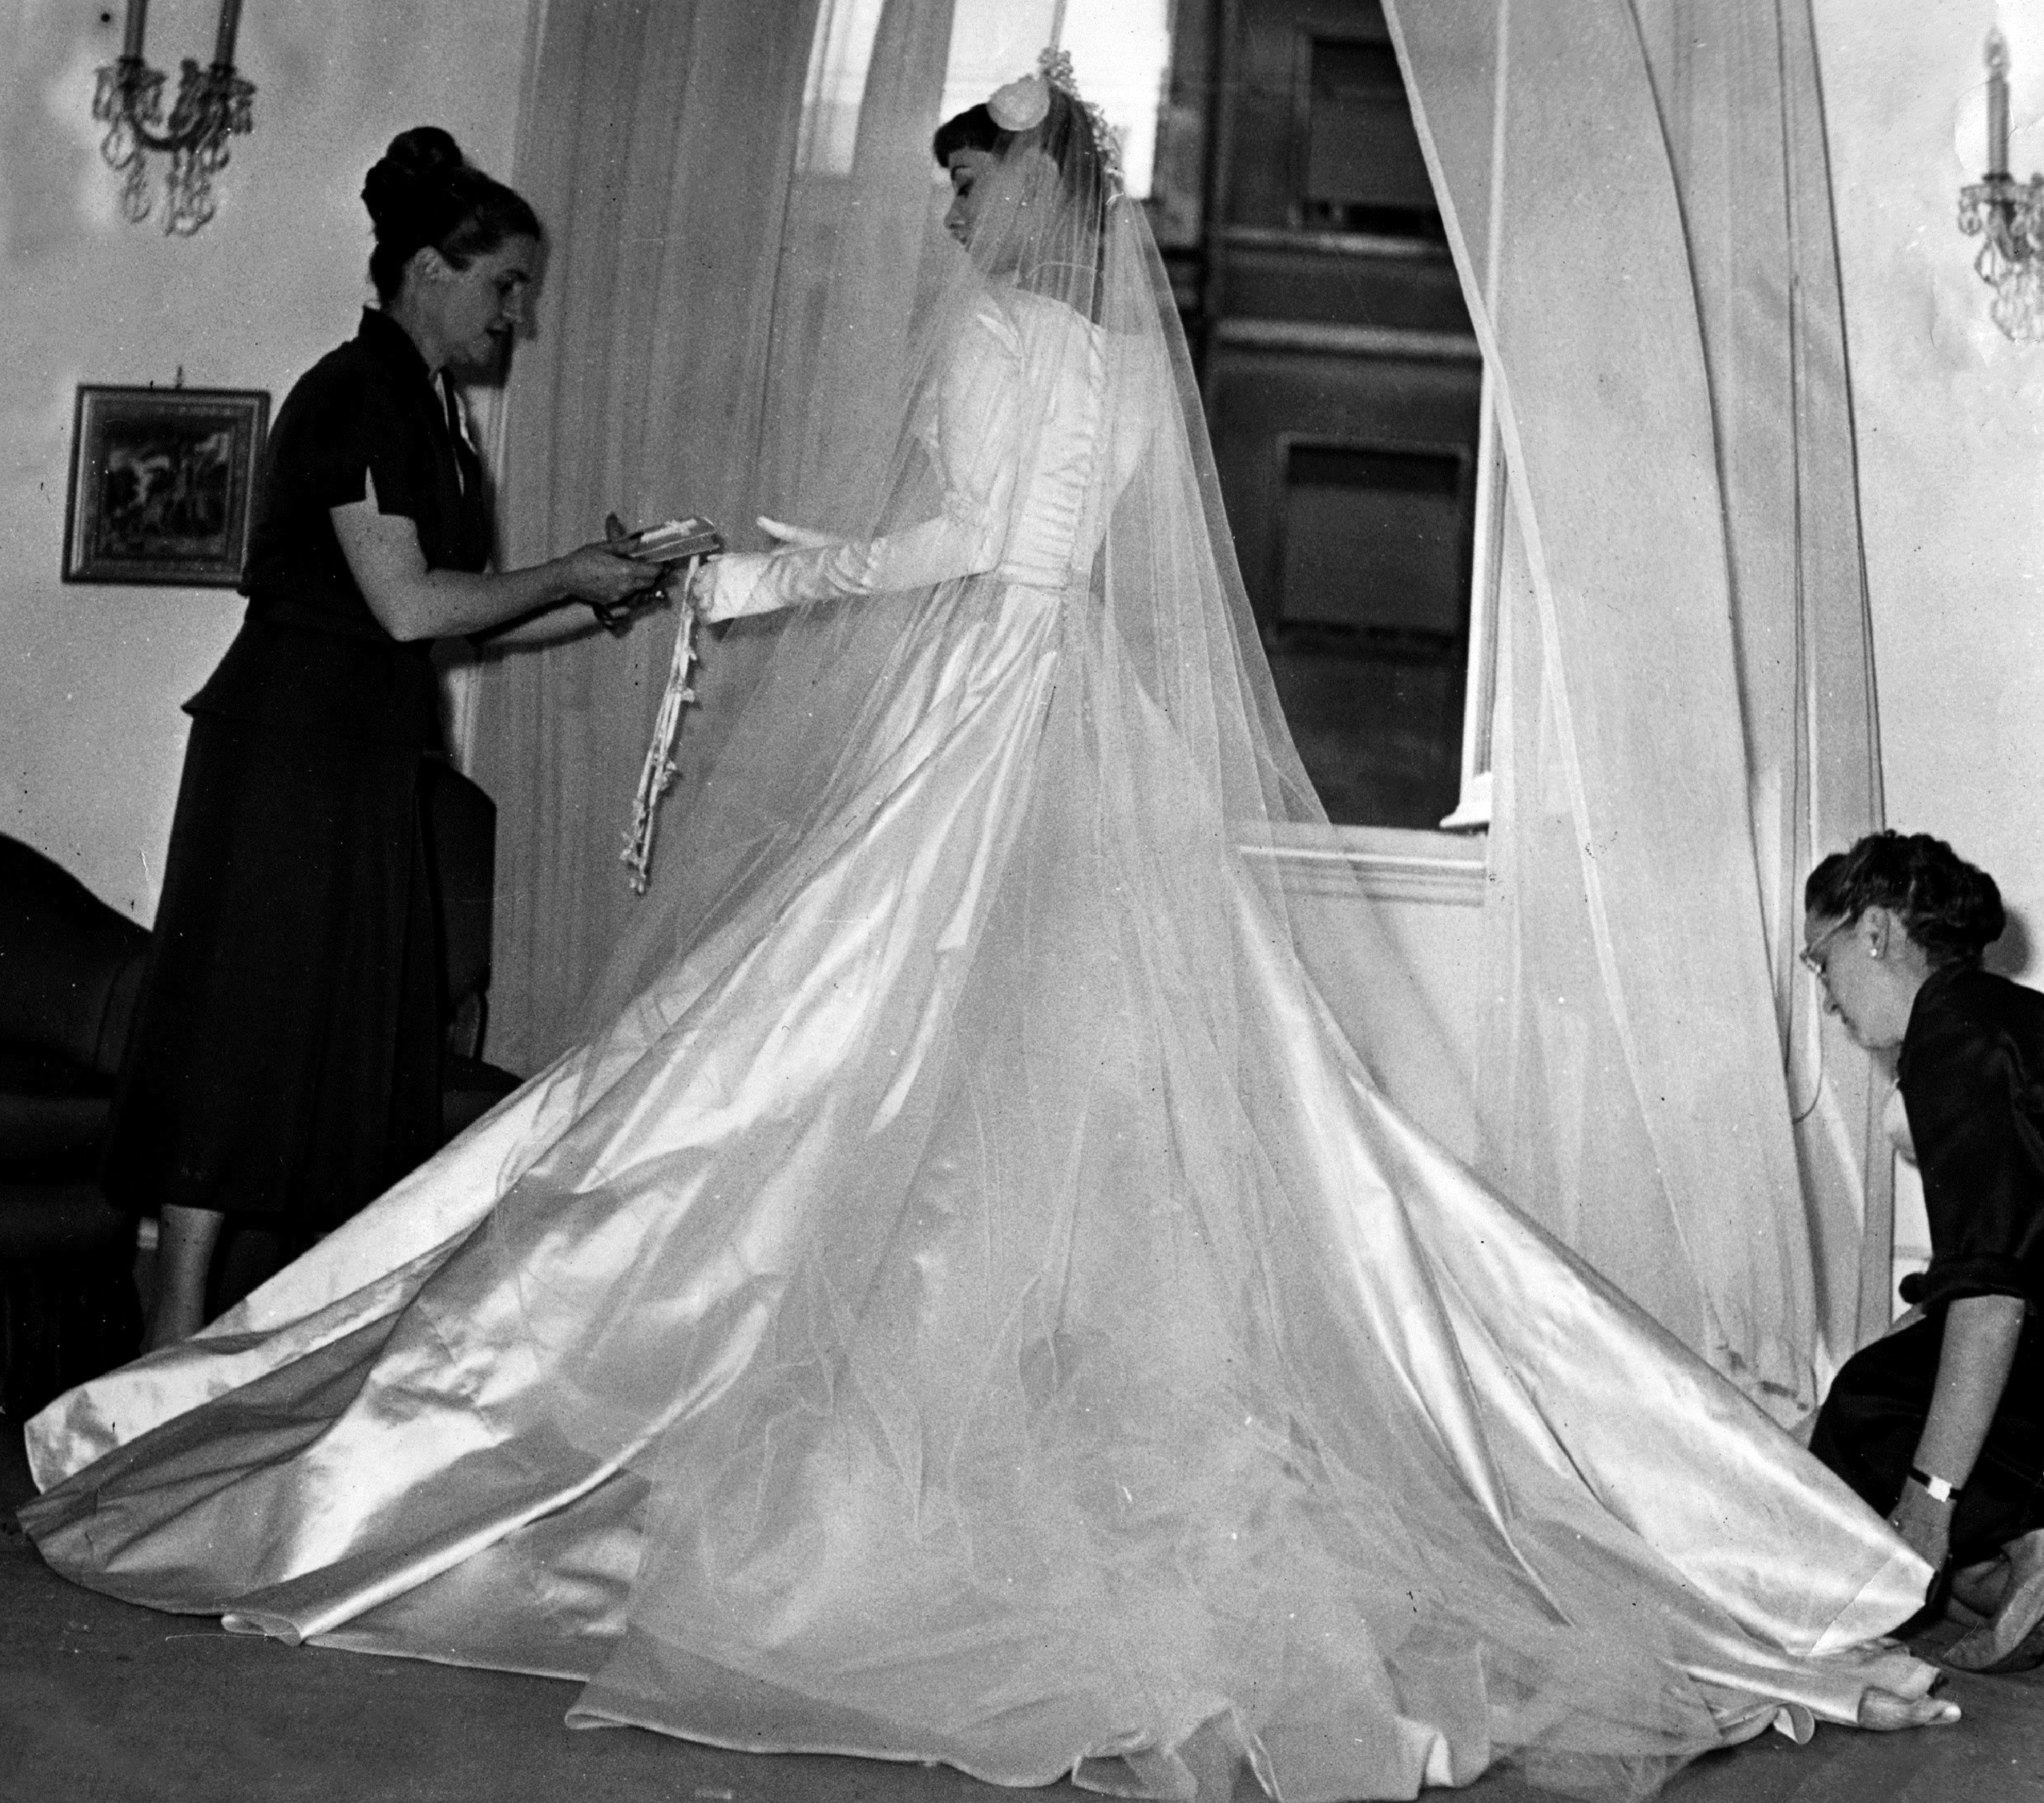 Audrey Wears The Wedding Dress Created For Her By The Fontana Sisters For Her Marriage To Sir Jame Audrey Hepburn Wedding Audrey Hepburn Famous Wedding Dresses